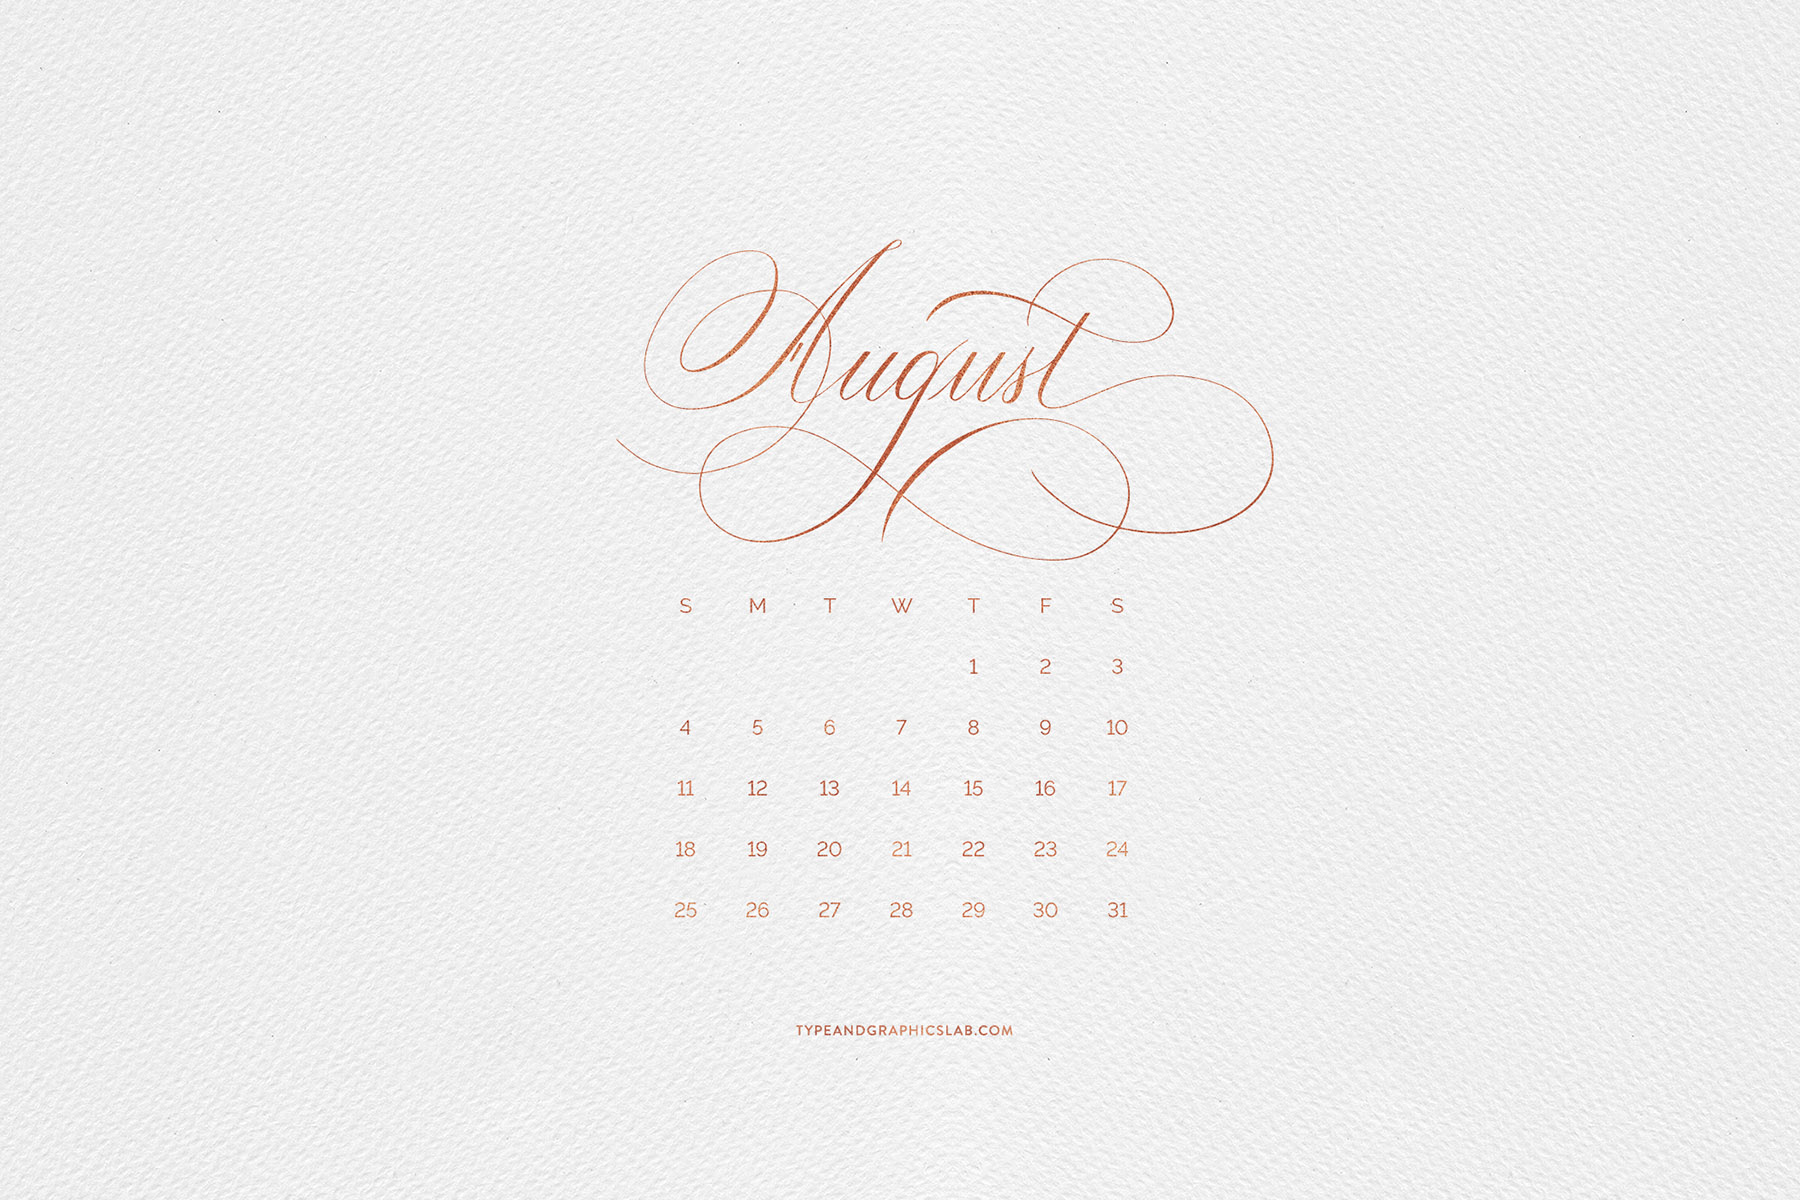 Download free desktop, mobile, and printable calendar for August 2019 | © typeandgraphicslab.com | For personal use only